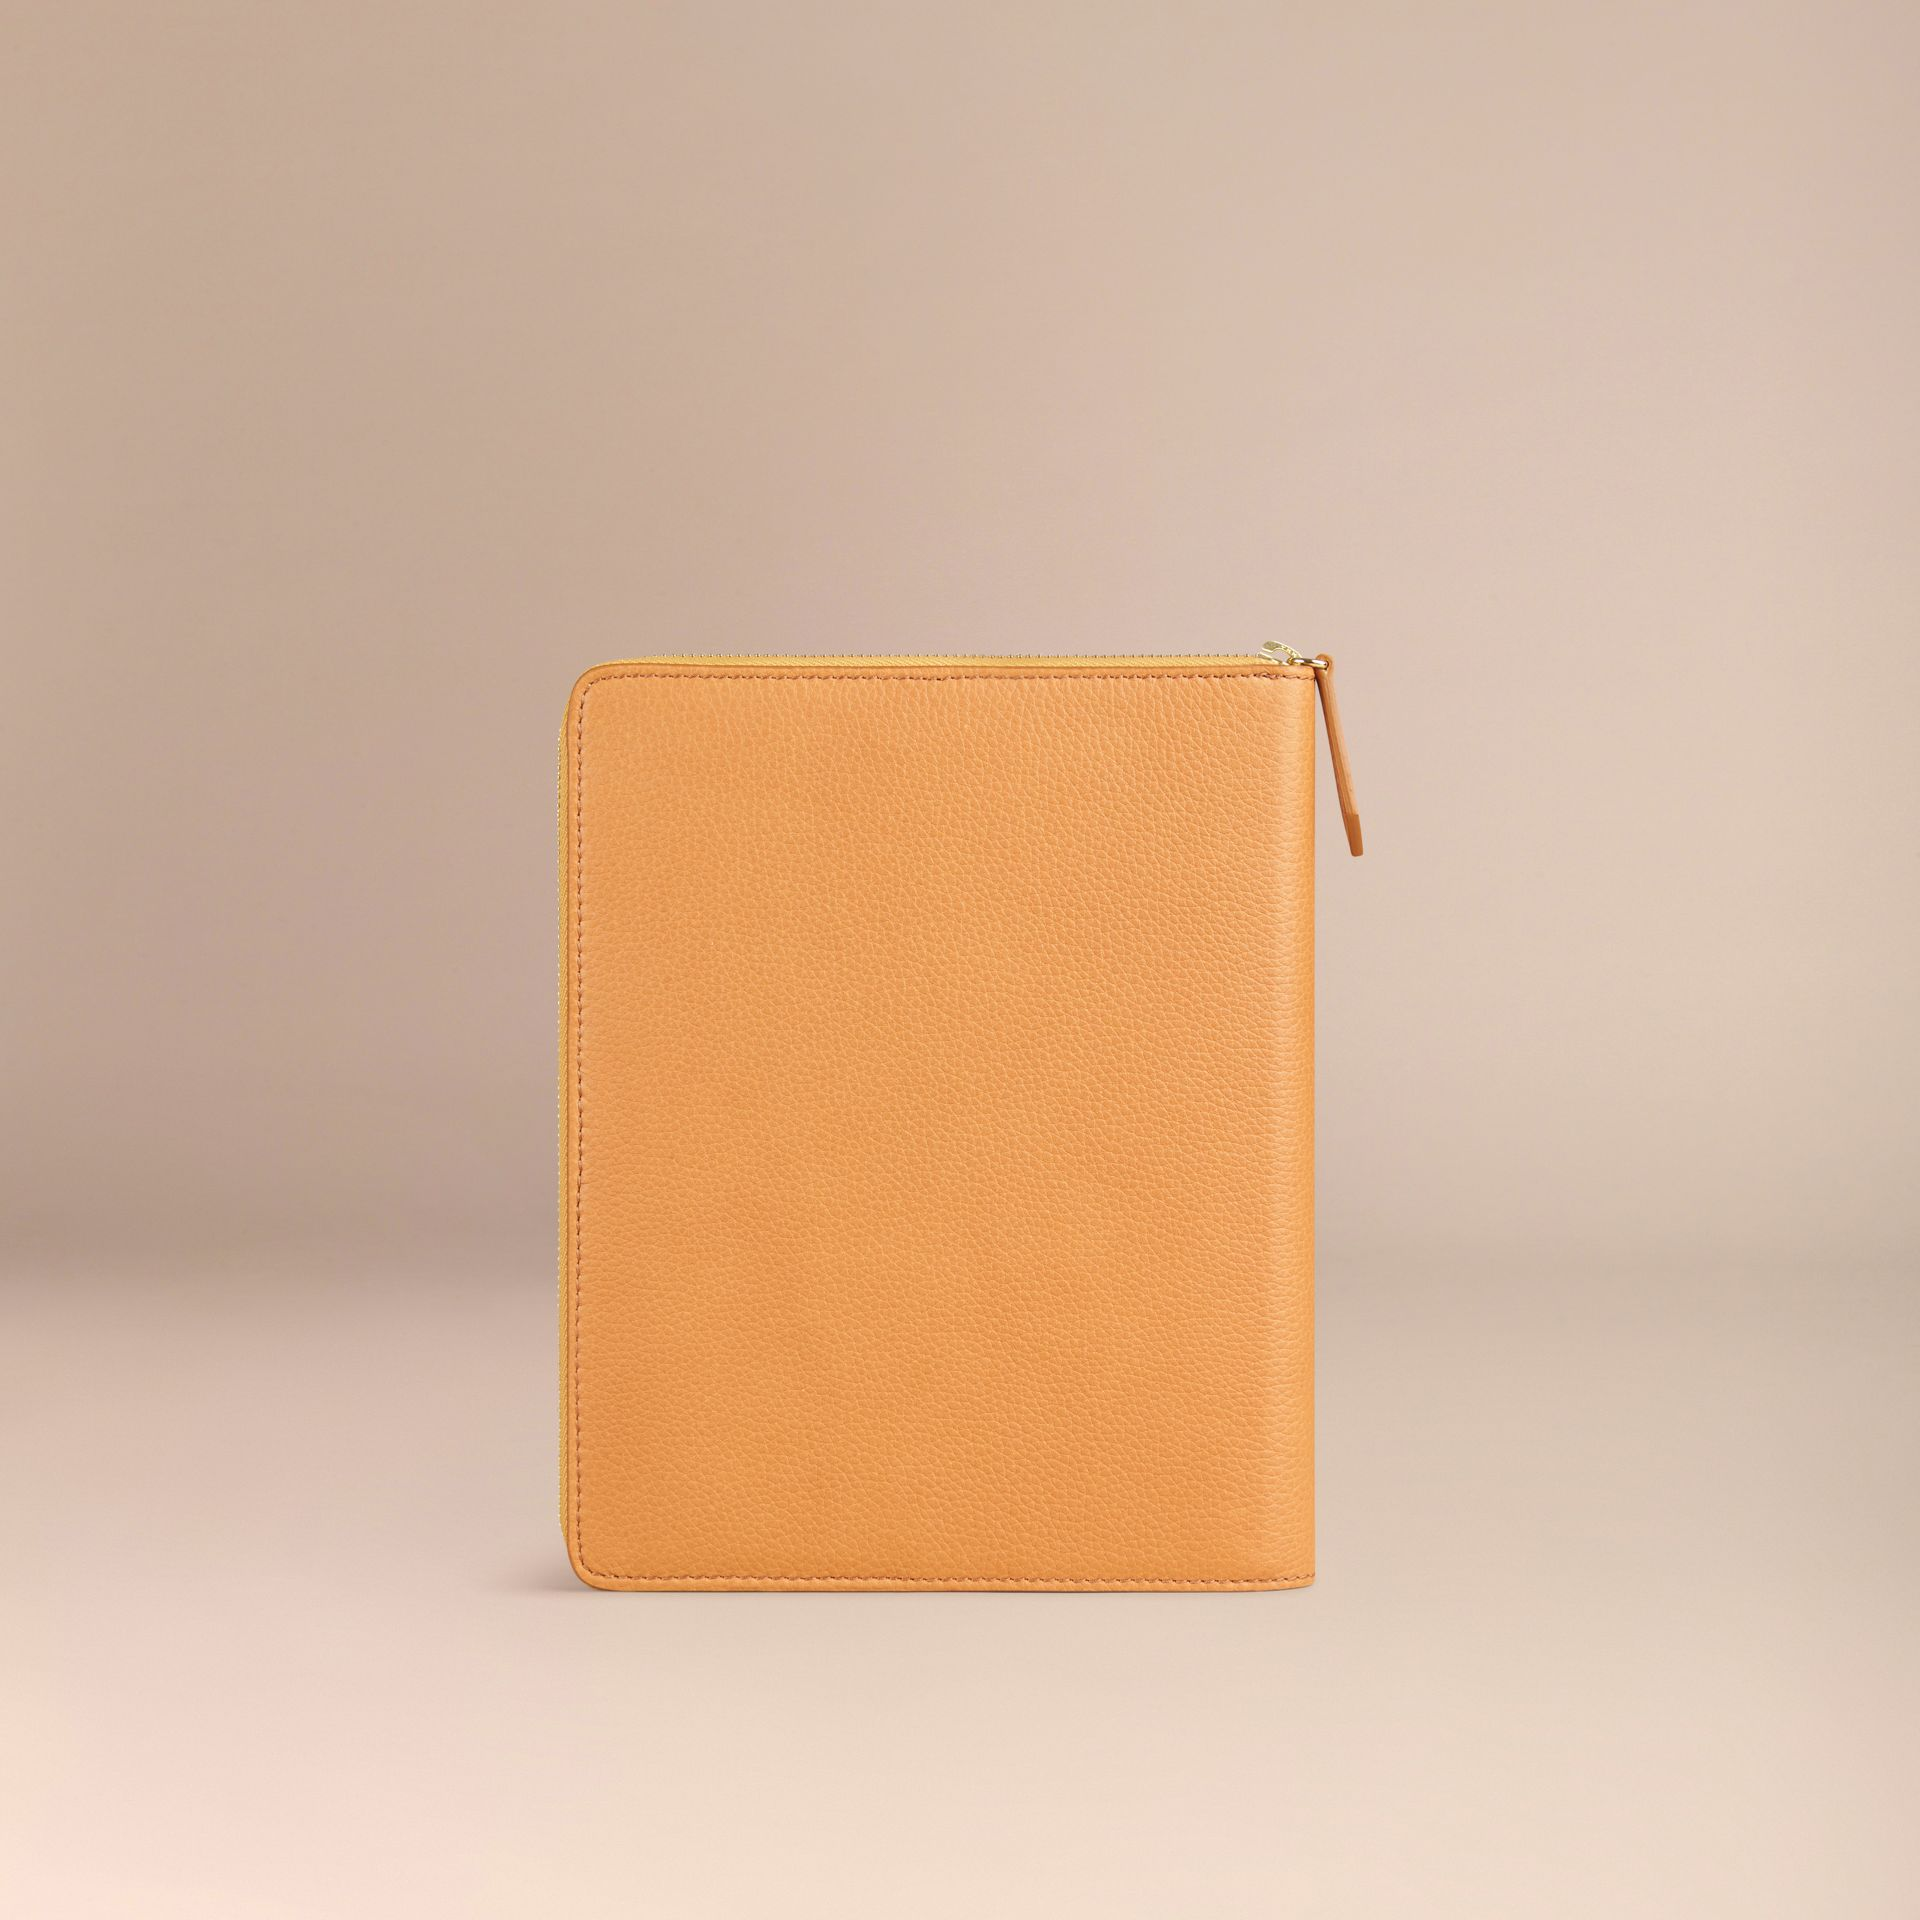 Ziparound Grainy Leather 18 Month 2016/17 A5 Diary in Ochre Yellow - gallery image 3